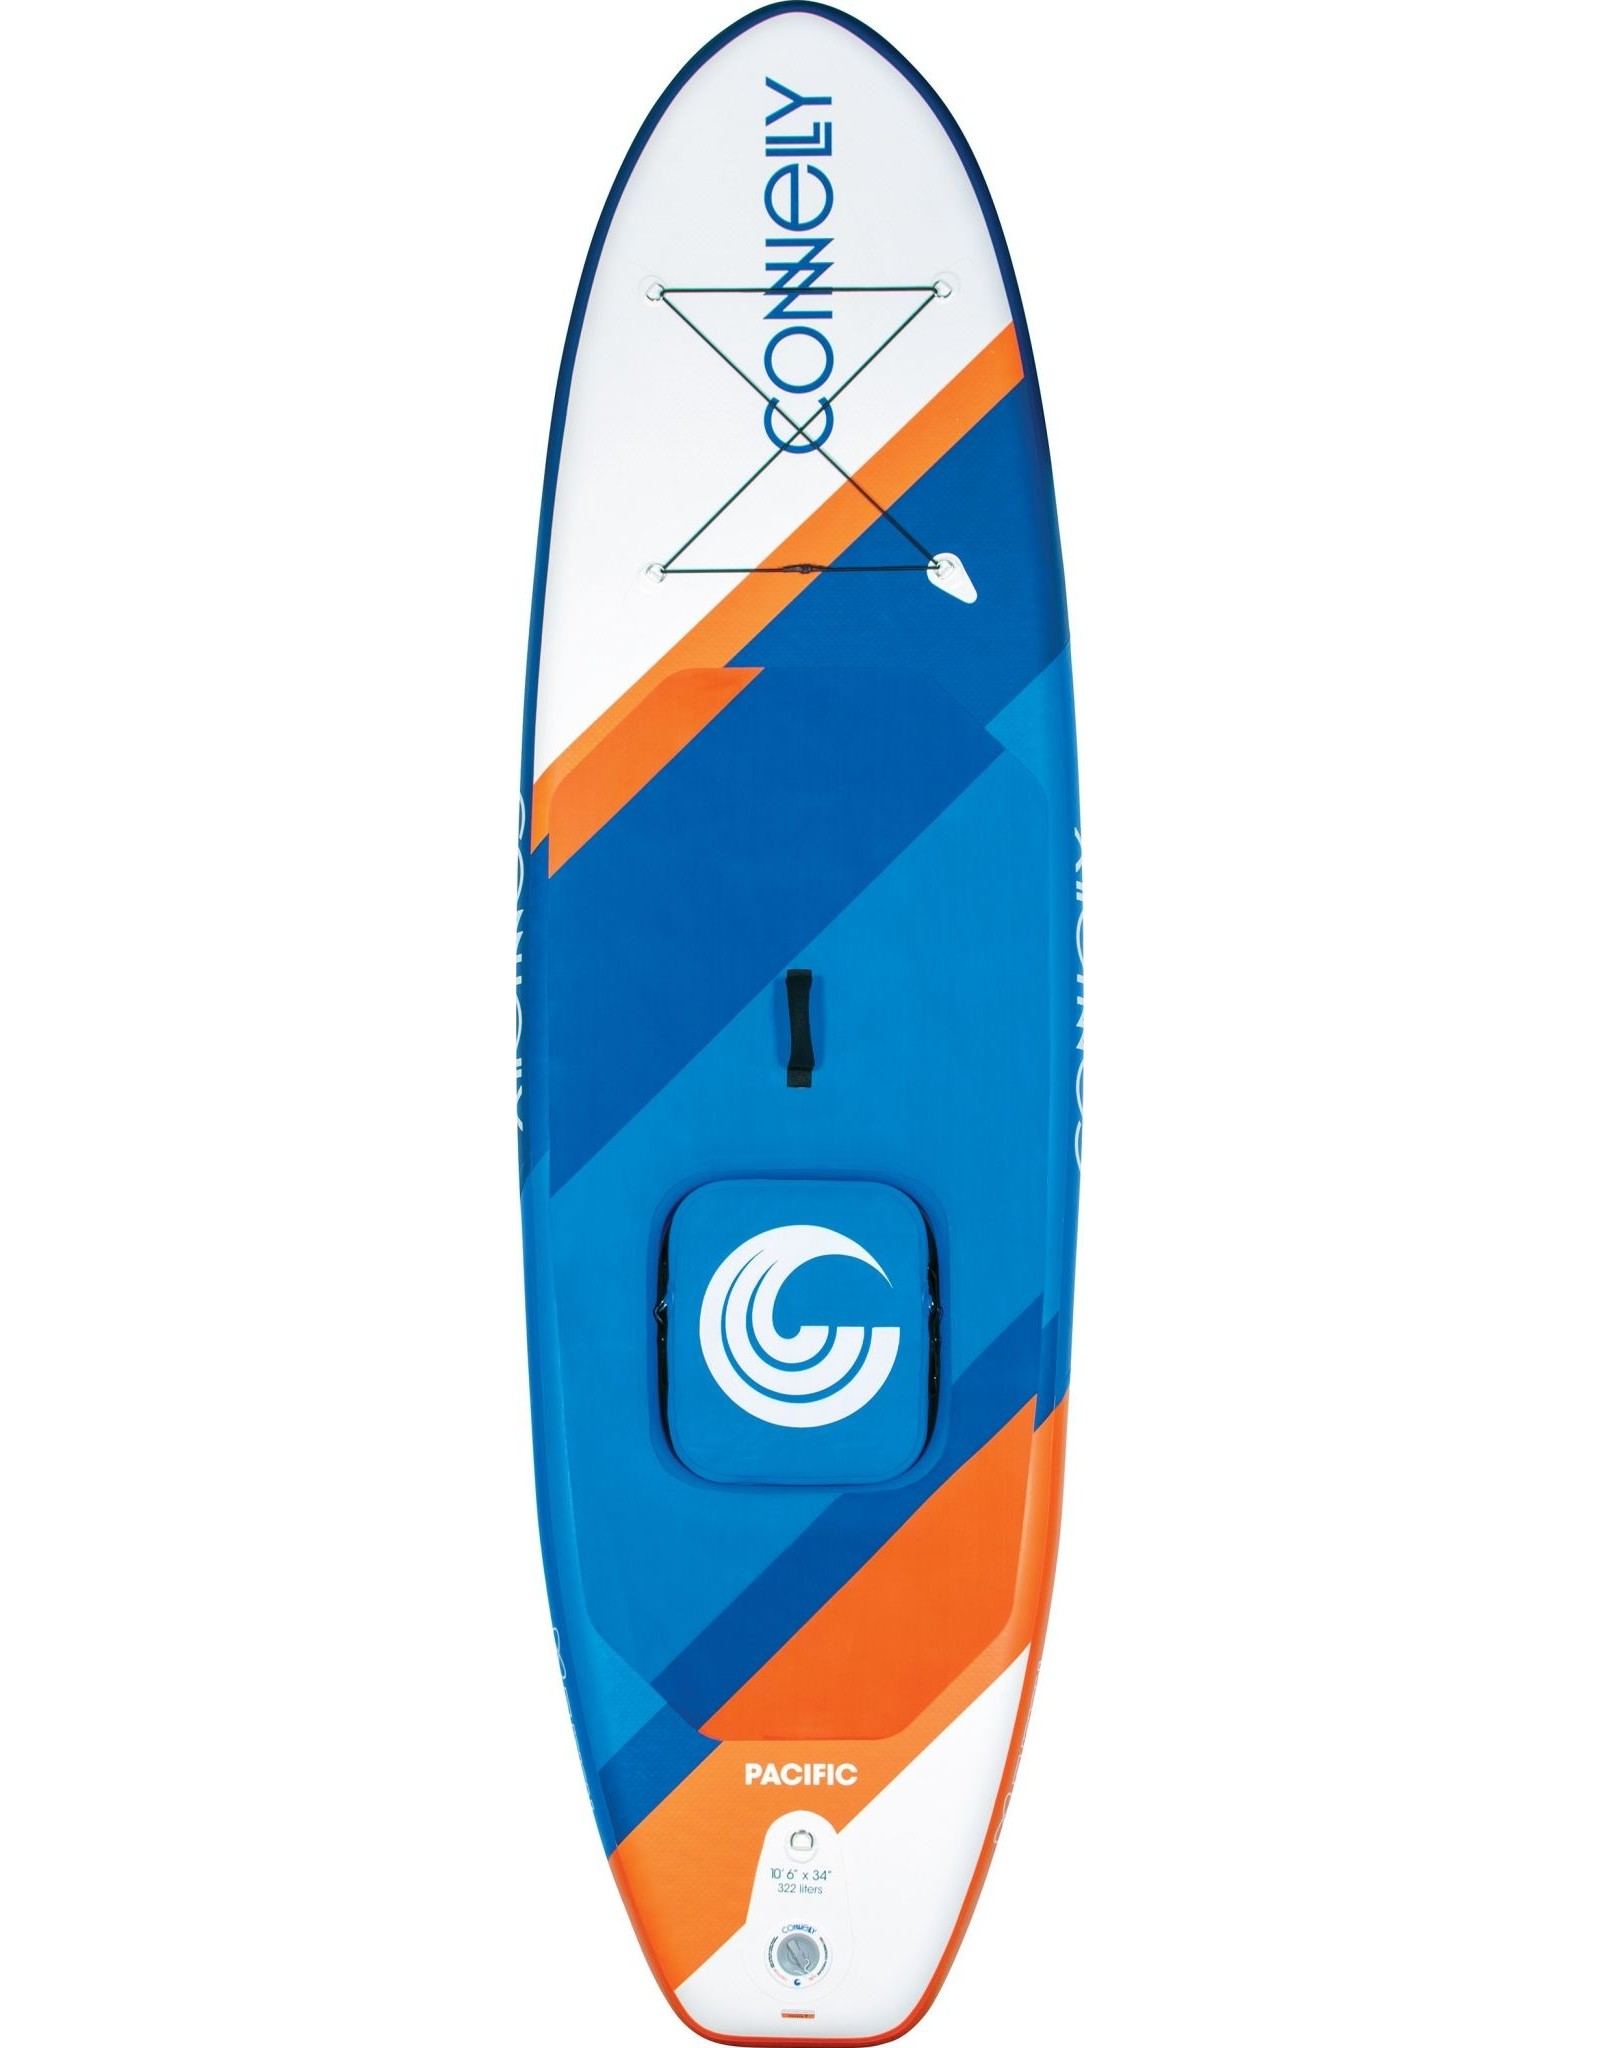 Connelly Pacific iSUP Paddleboard